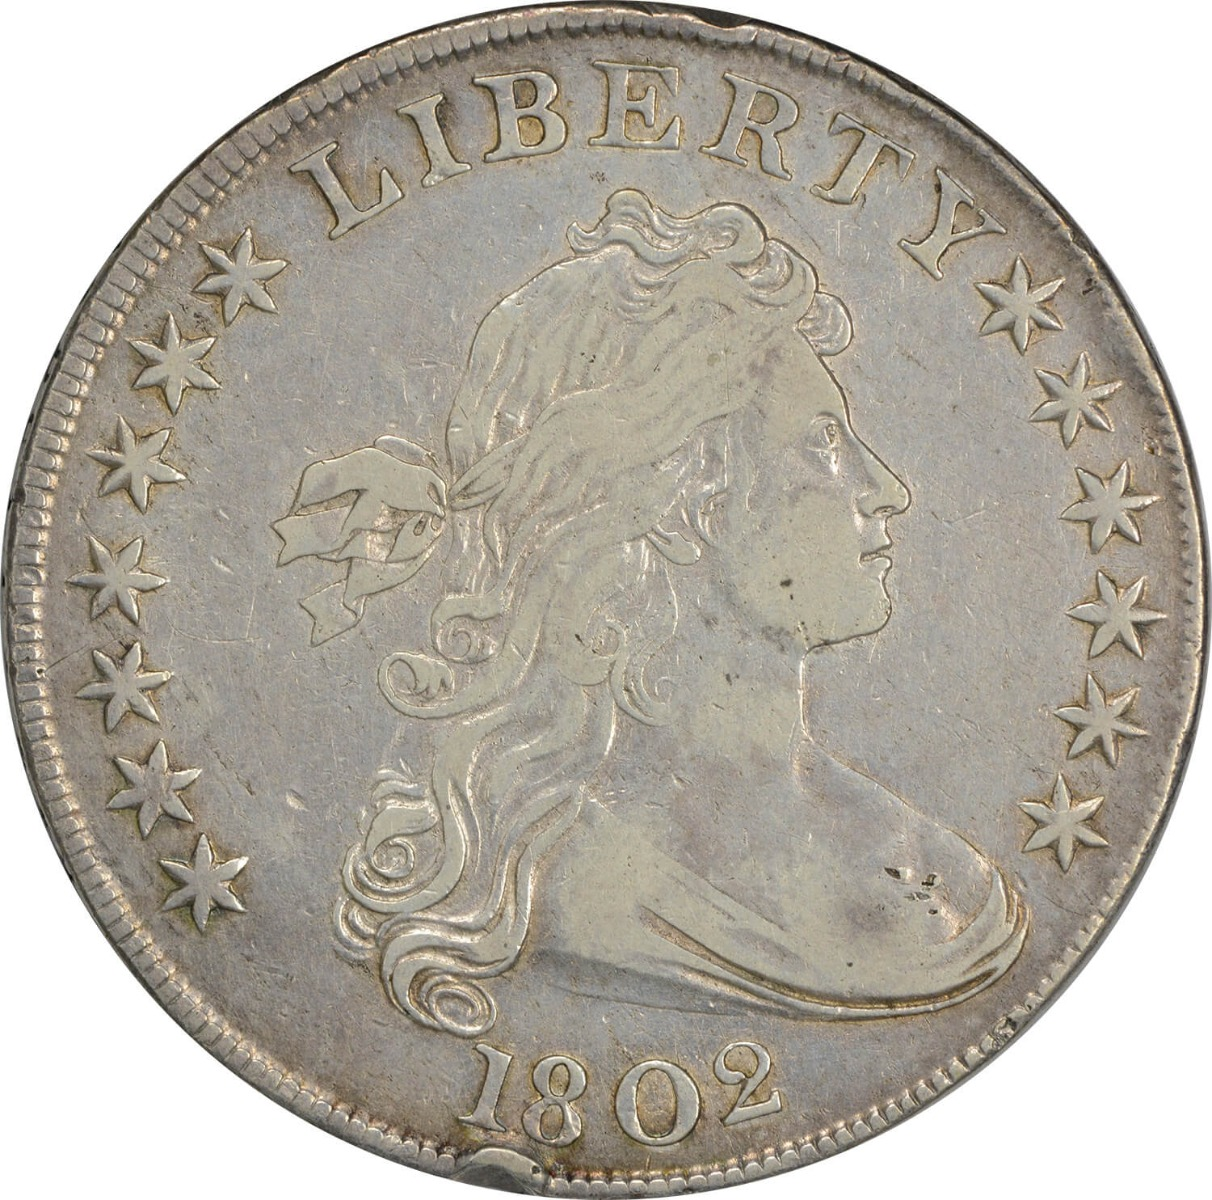 1802 Bust Silver Dollar EF (Rim Bump) Uncertified